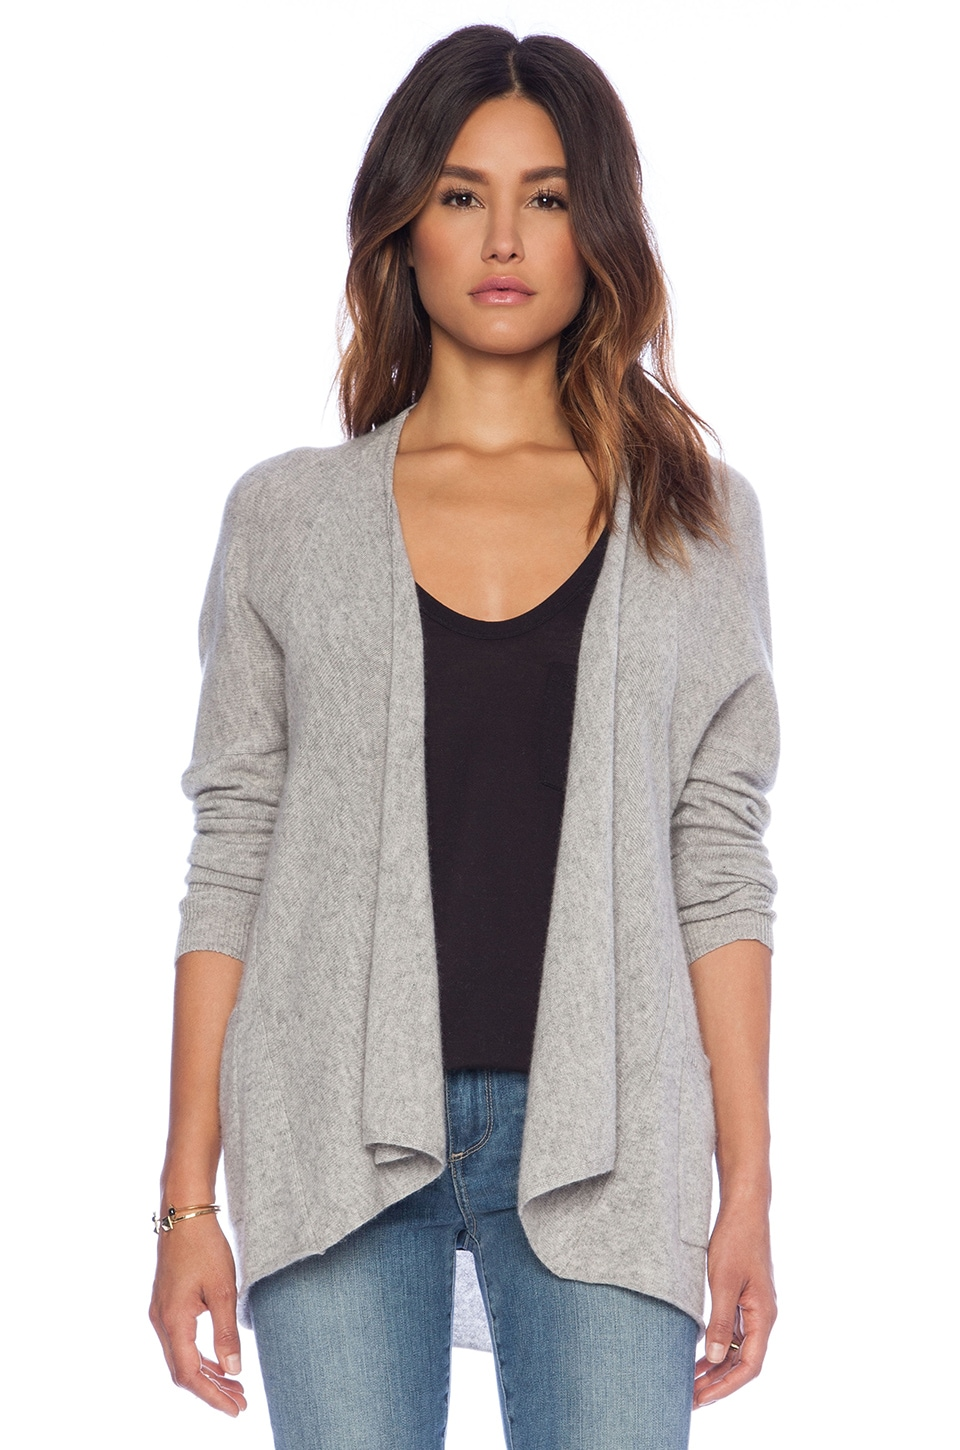 Autumn Cashmere Drape Cardigan in Sweatshirt